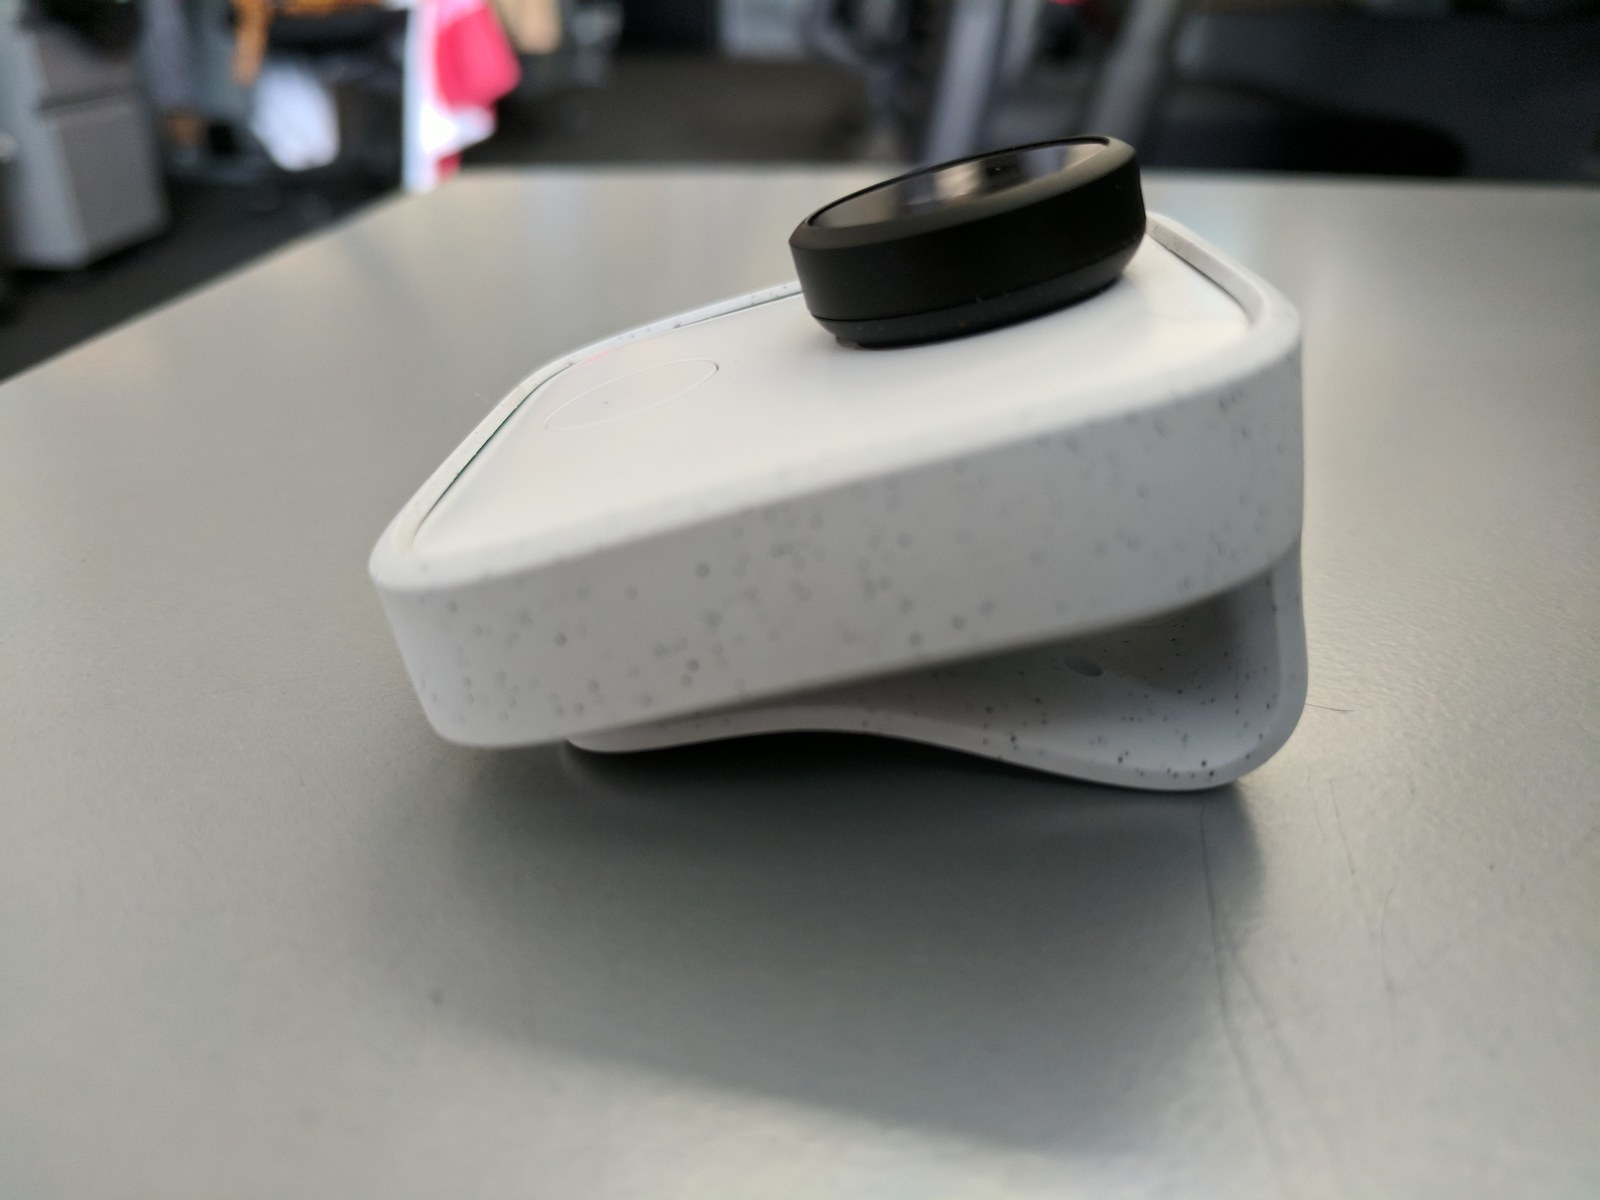 Google announces Google Clips, a camera that knows when to snap photos